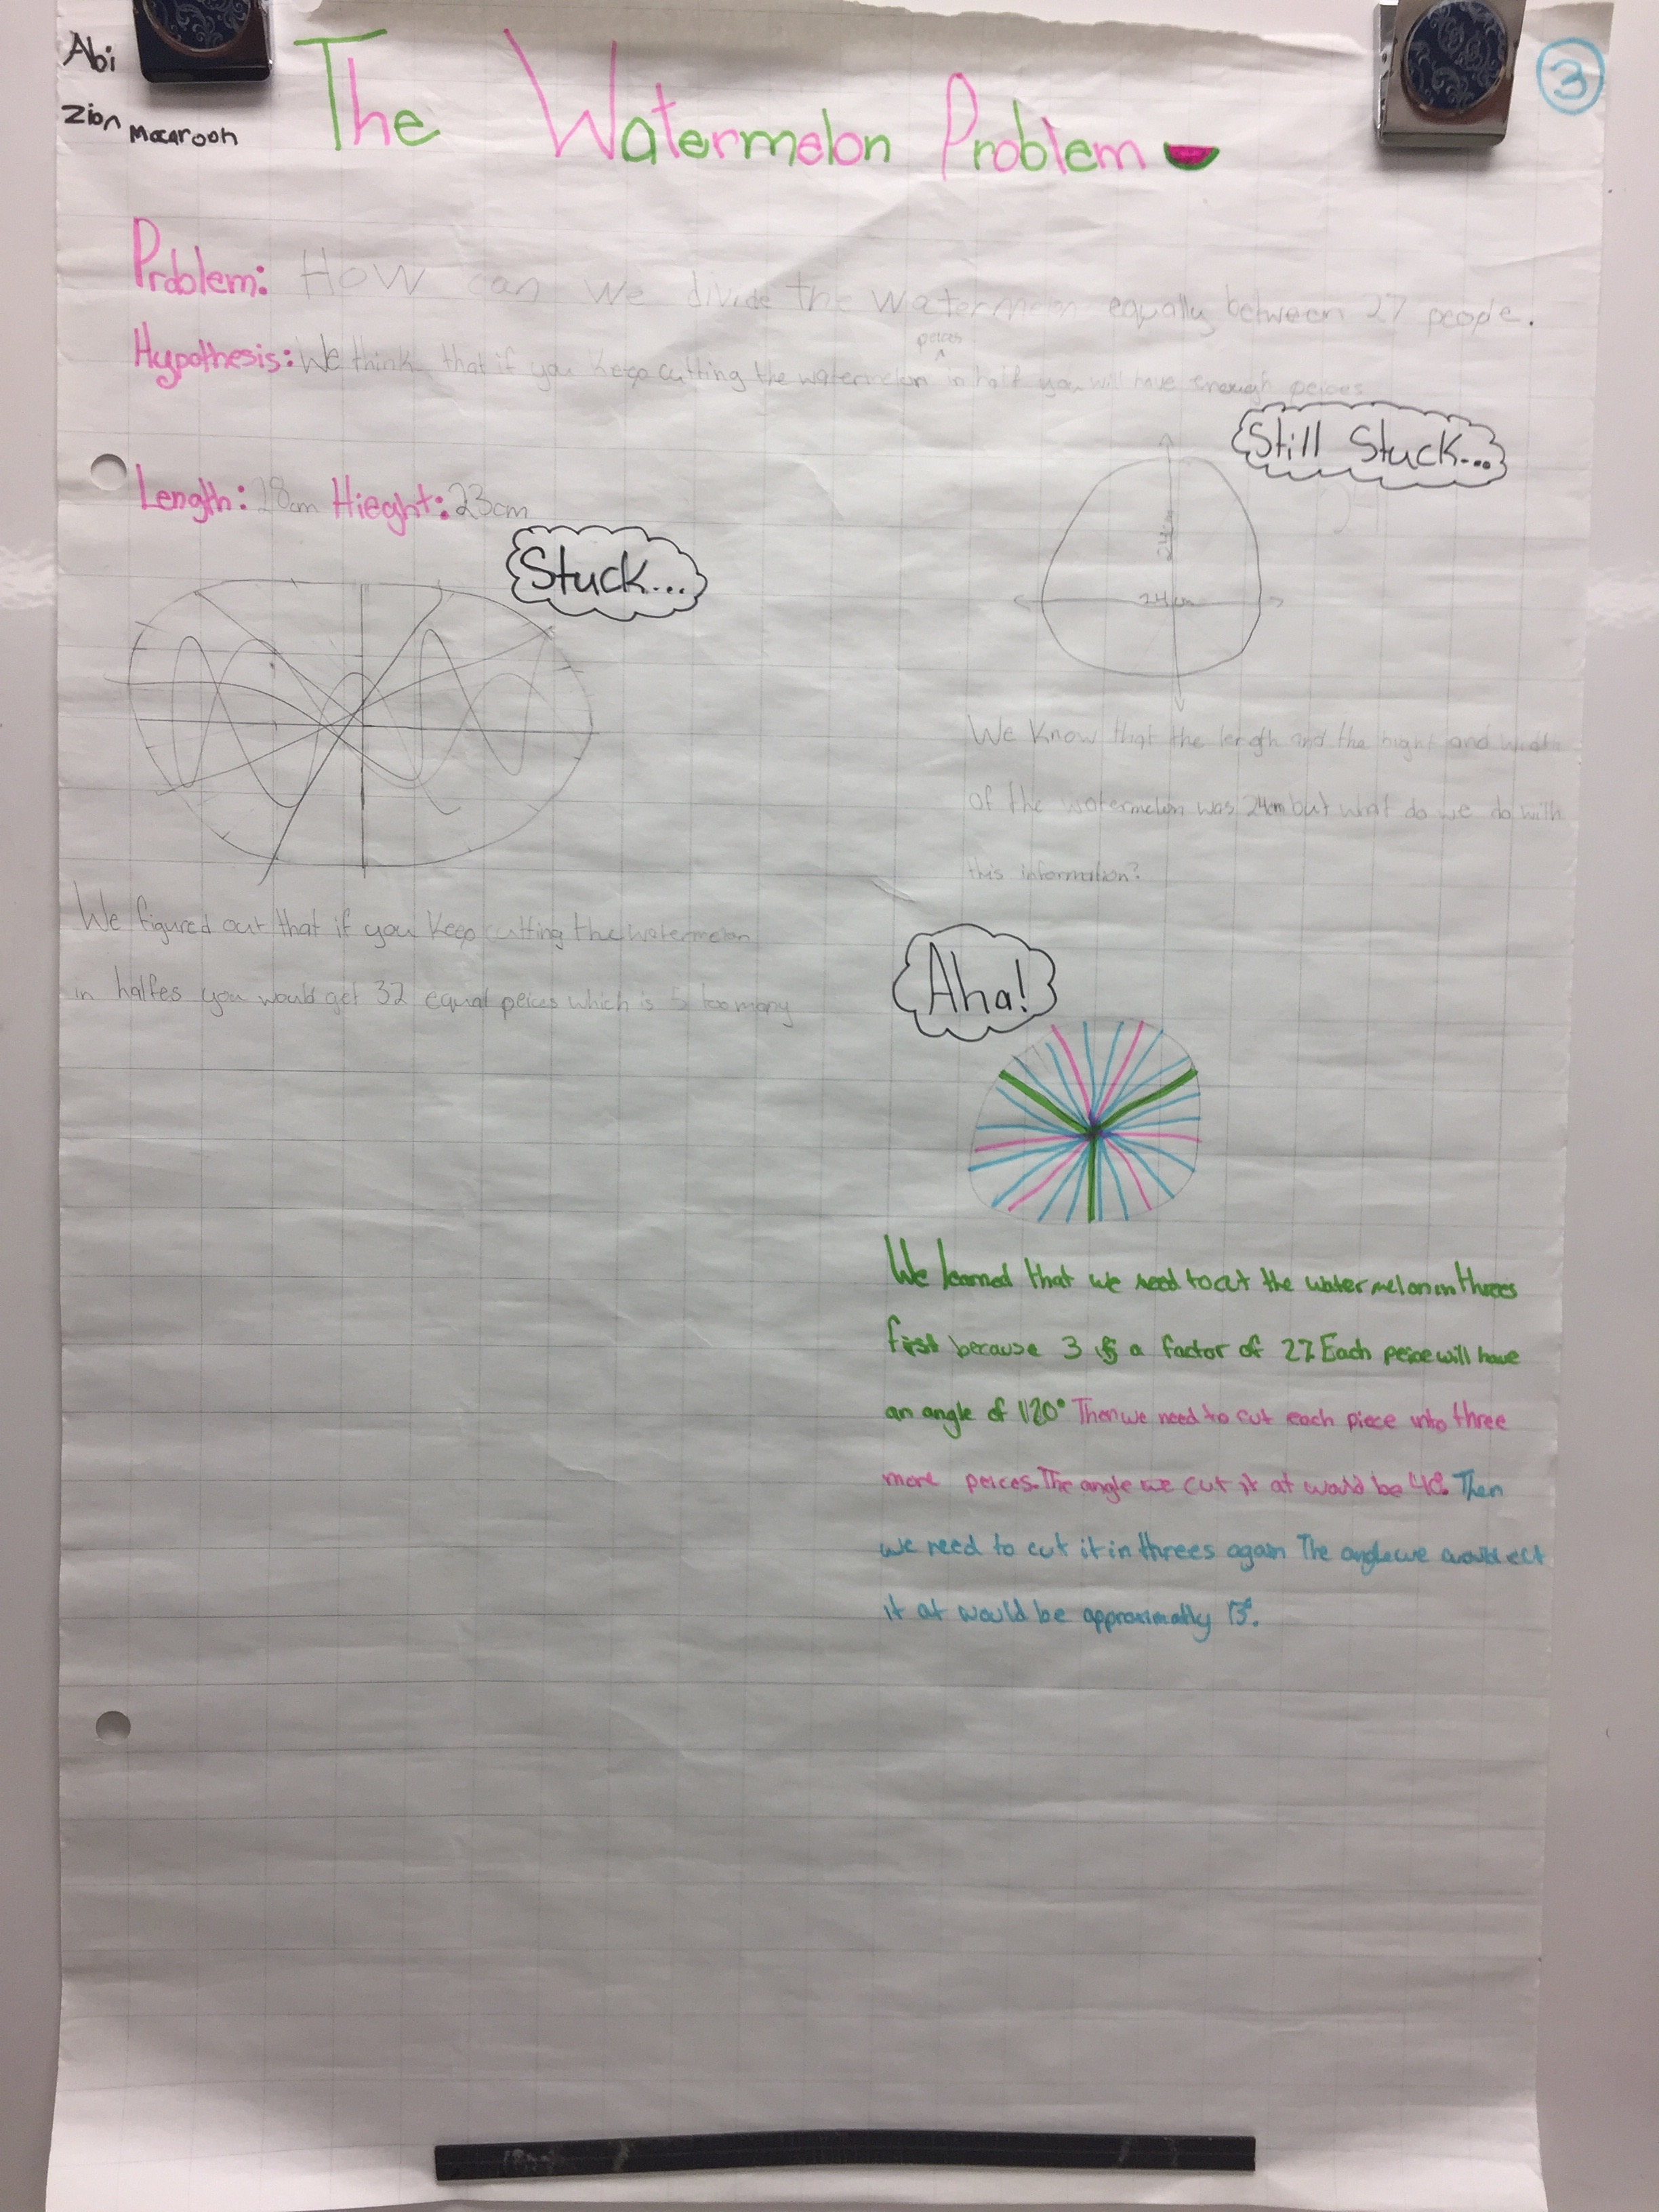 2016-09-14-the-watermelon-problem-student-solutions-9.jpg